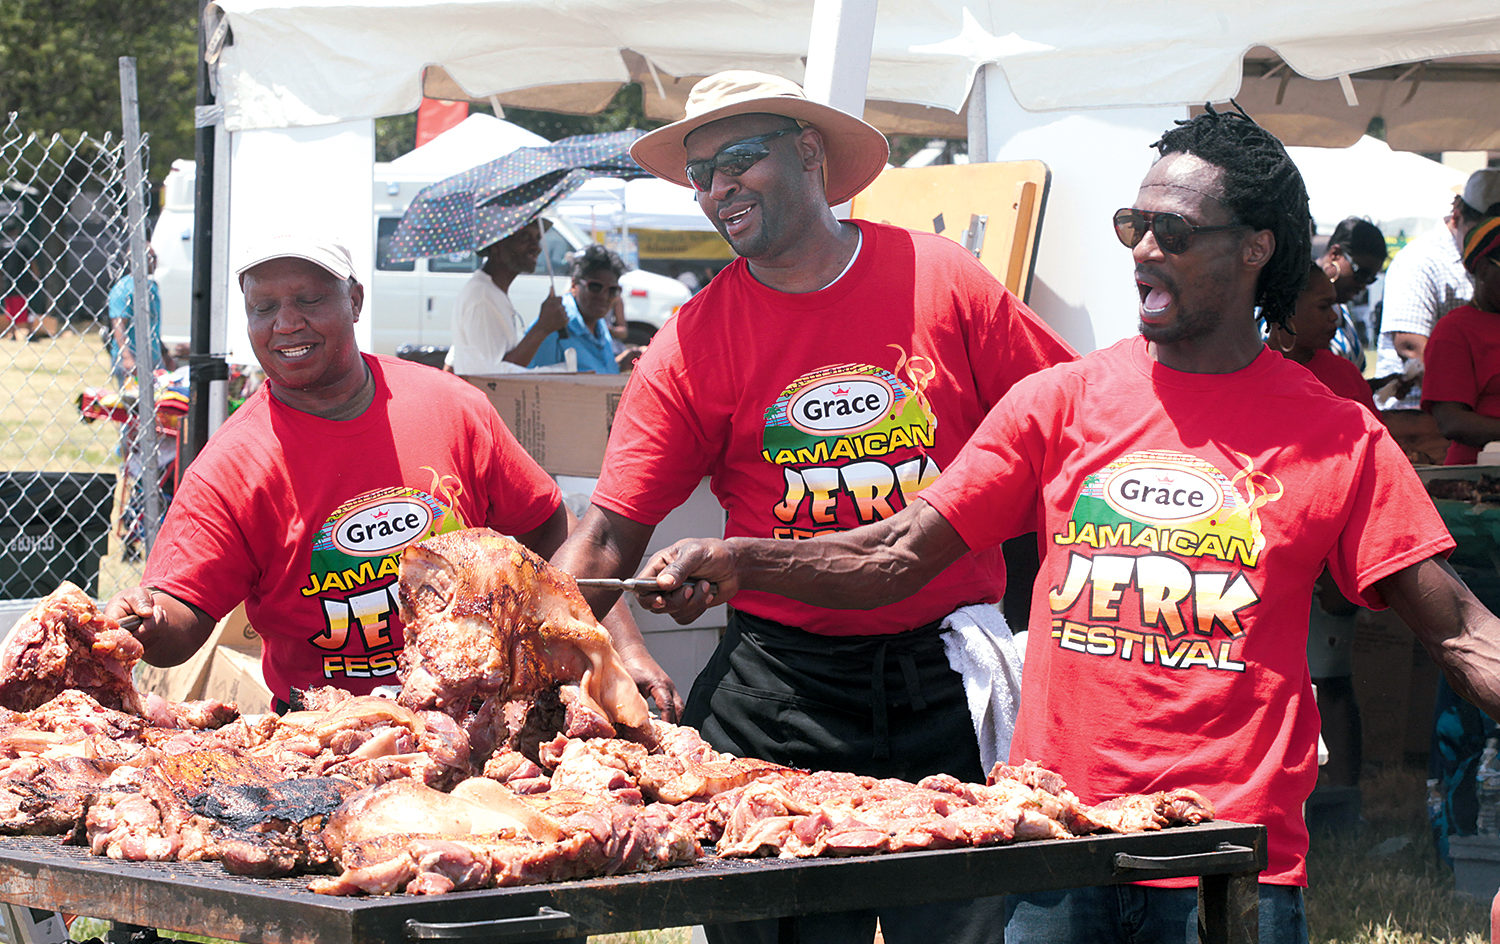 Photograph of Grace Jamaican Jerk Festival by Ajamu.